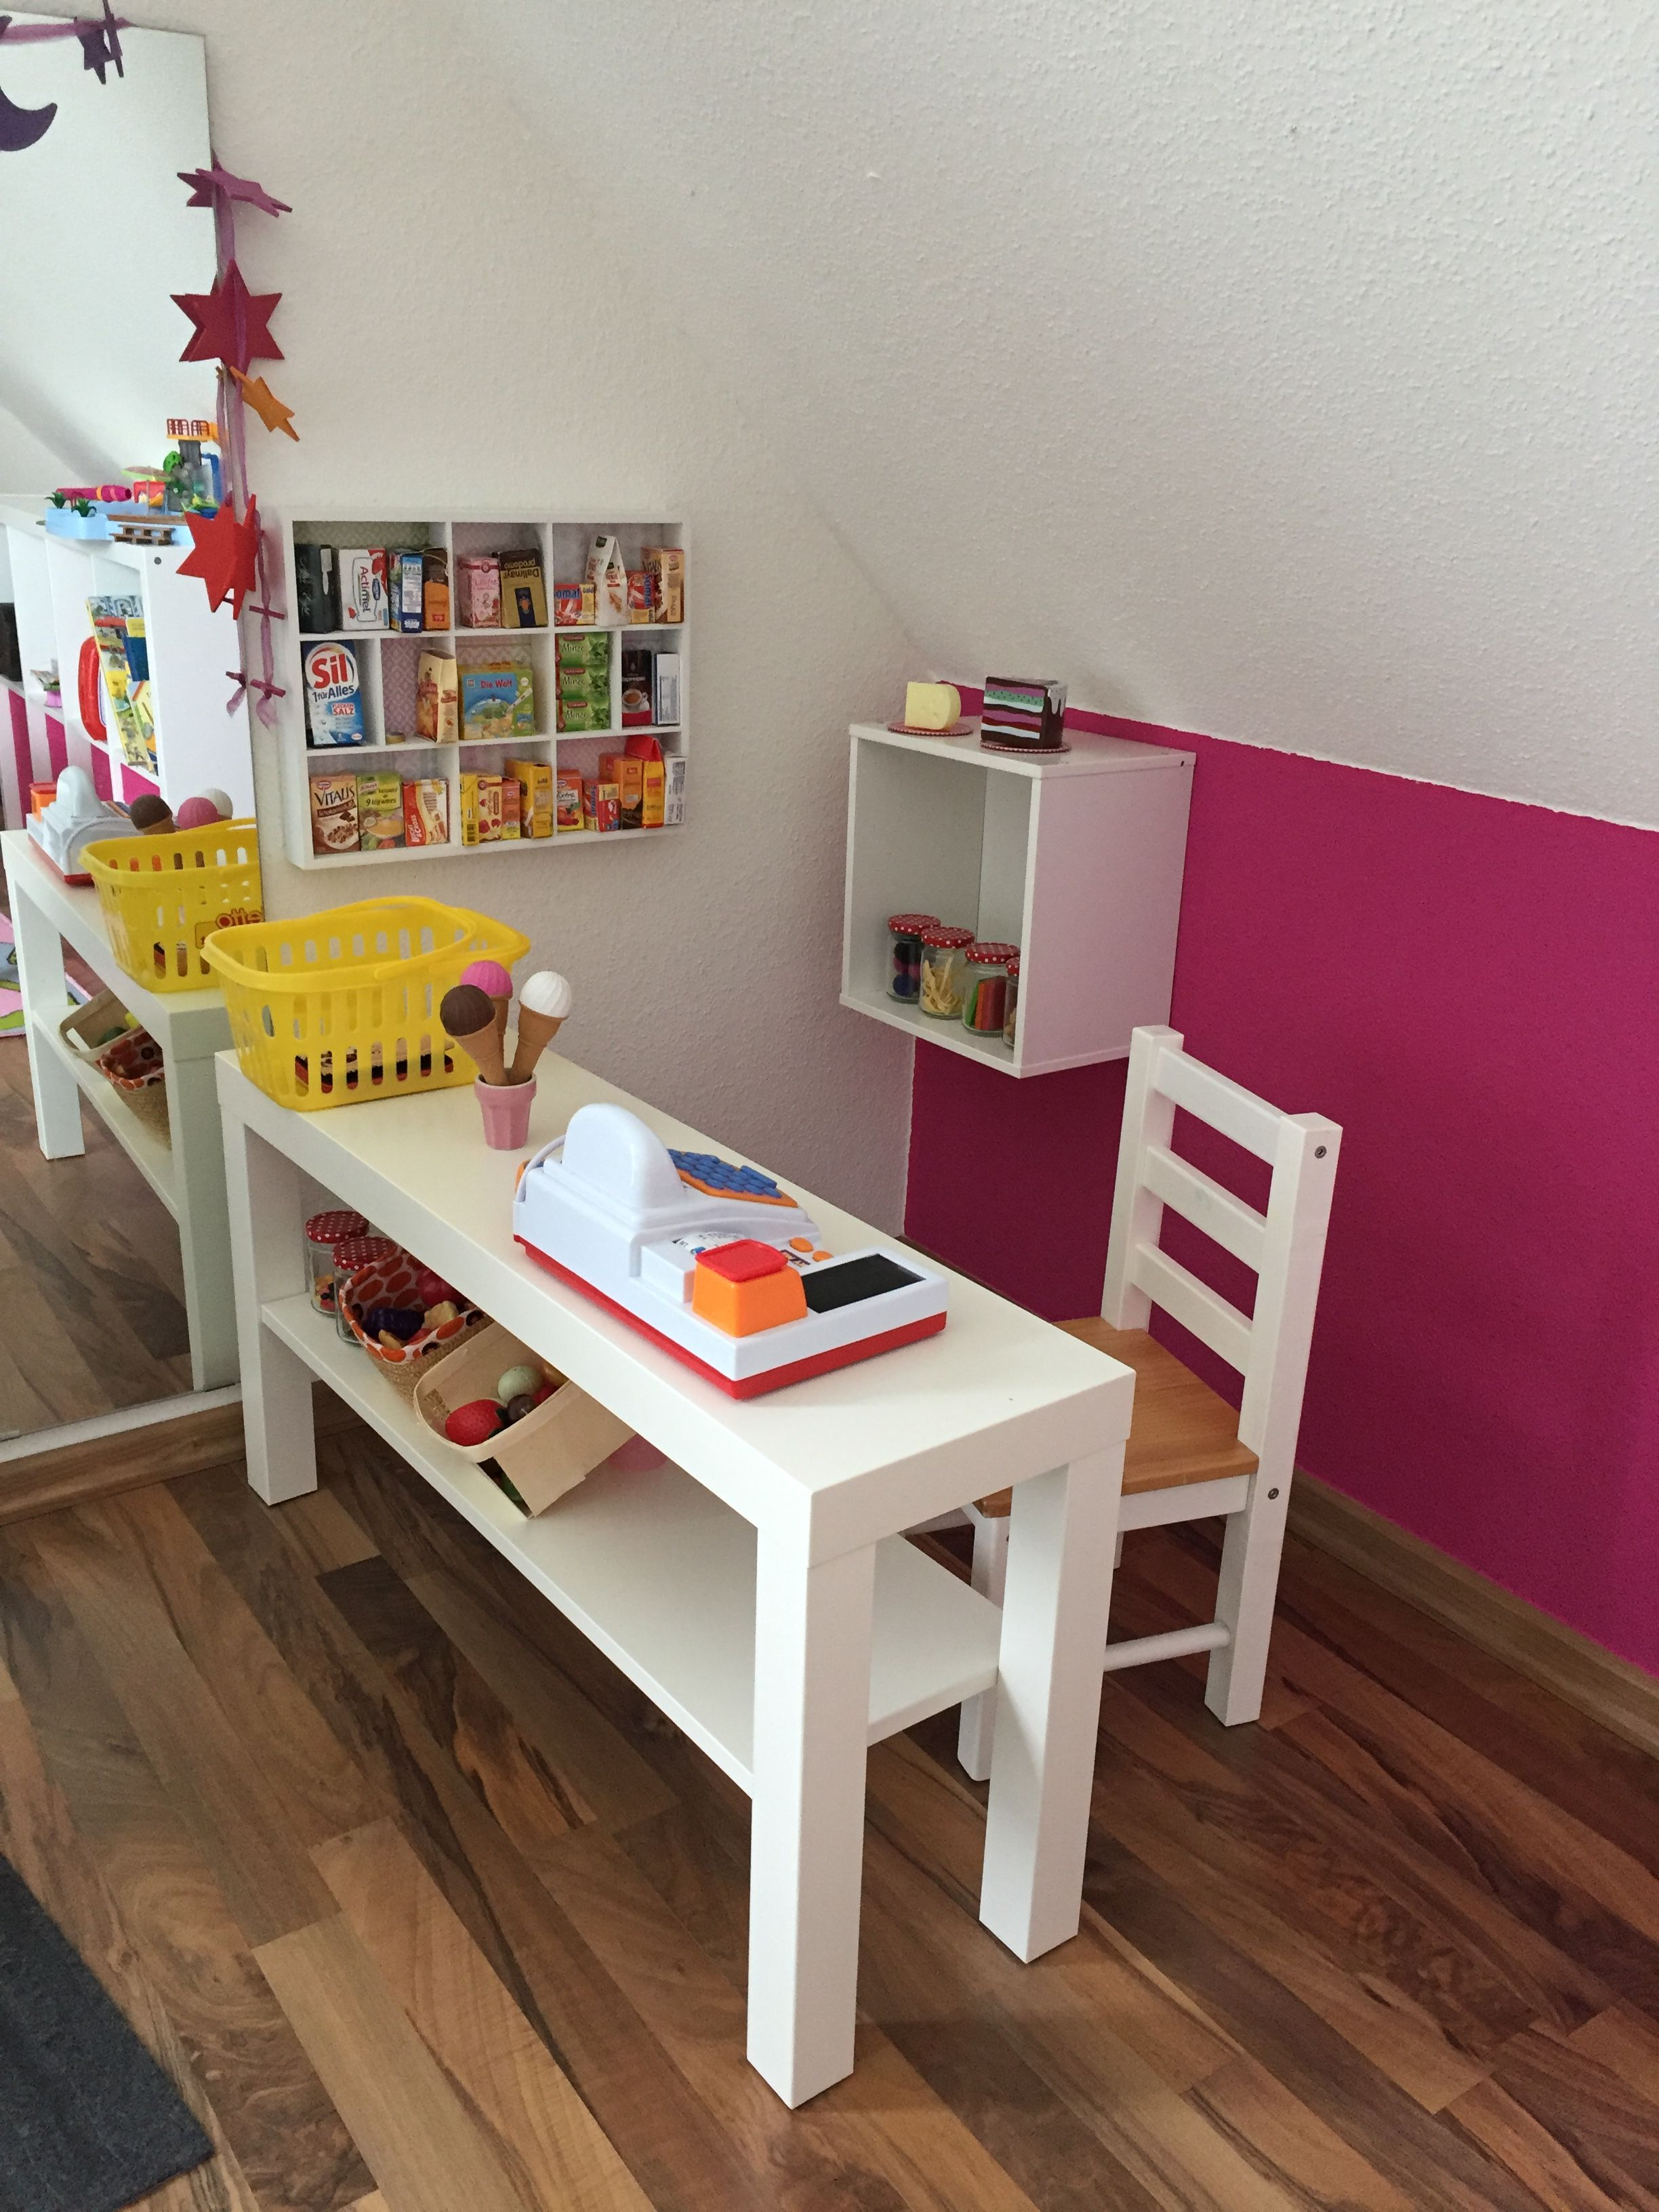 Diy Kaufladen Mit Ikea Tv Bank Lack Als Ladentheke Kids Room